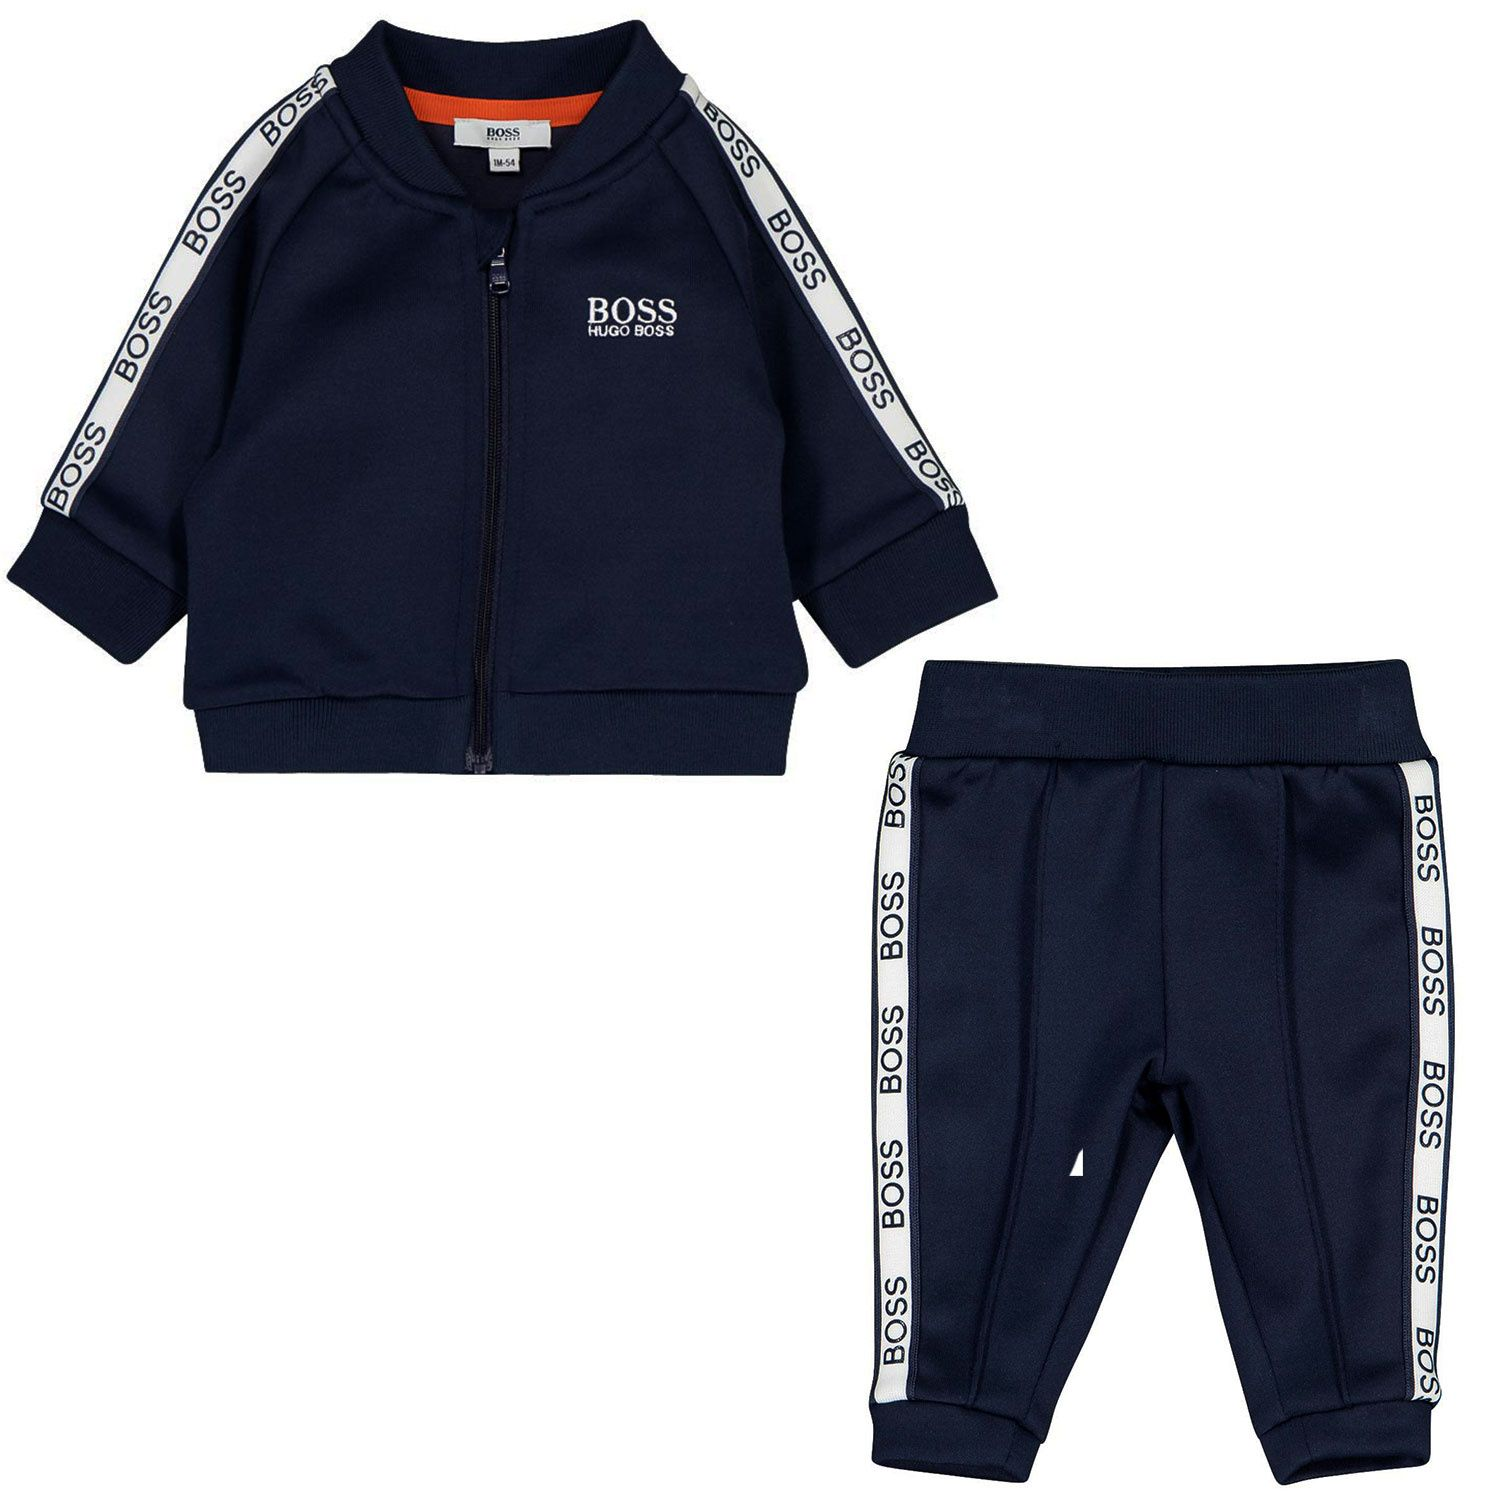 Picture of Boss J98288 baby sweatsuit navy